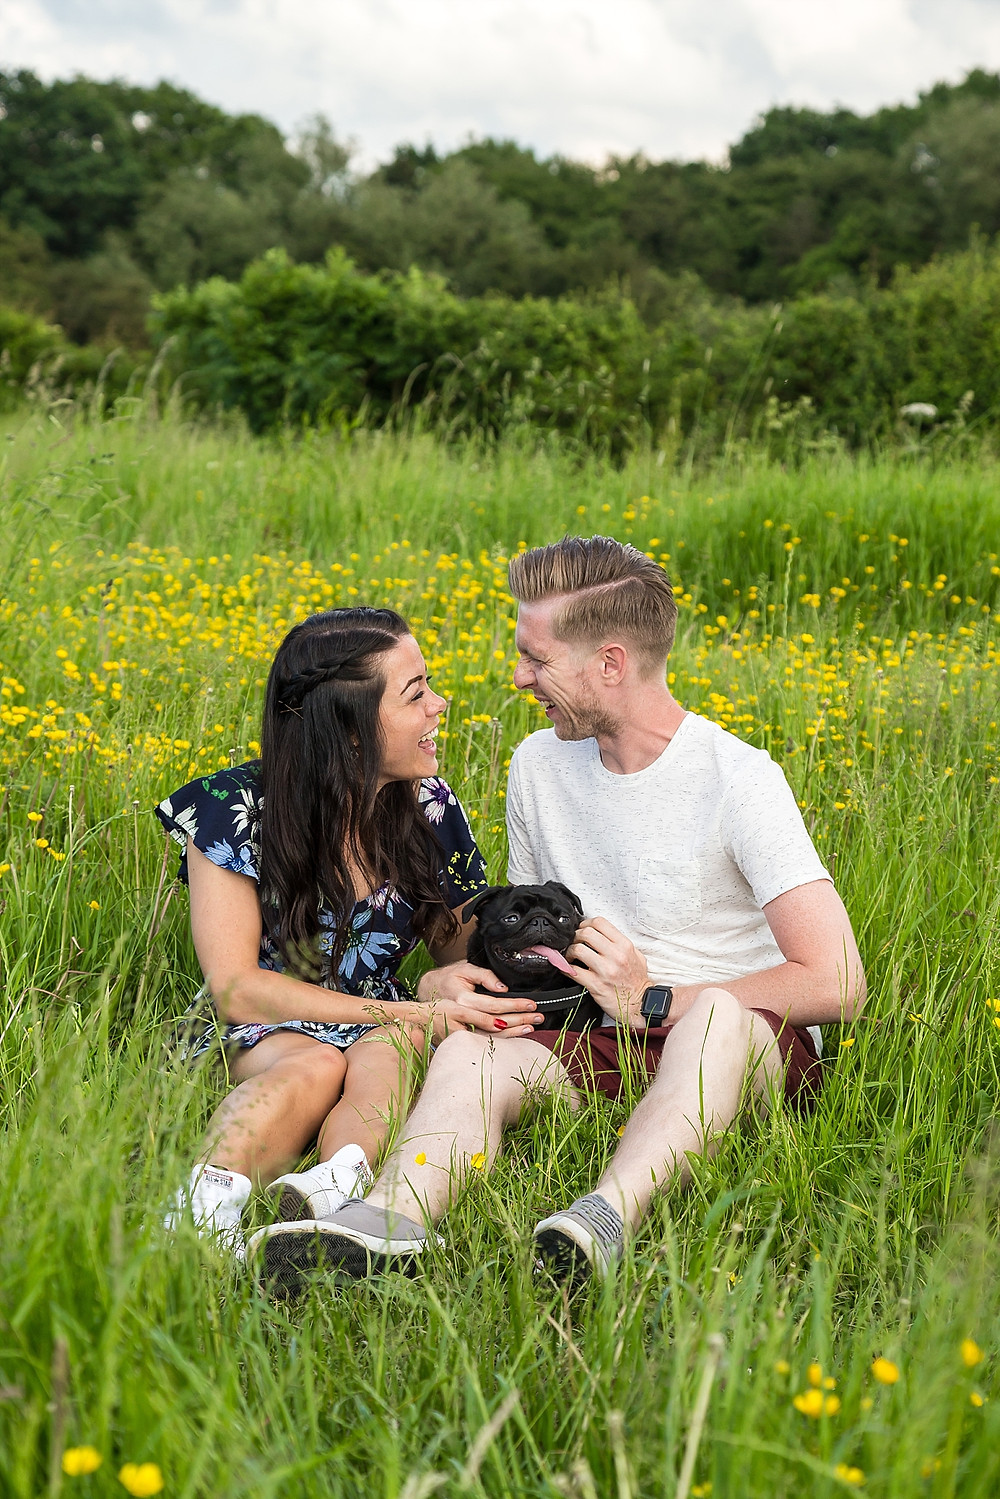 Engagement shoot in Warwickshire with dog